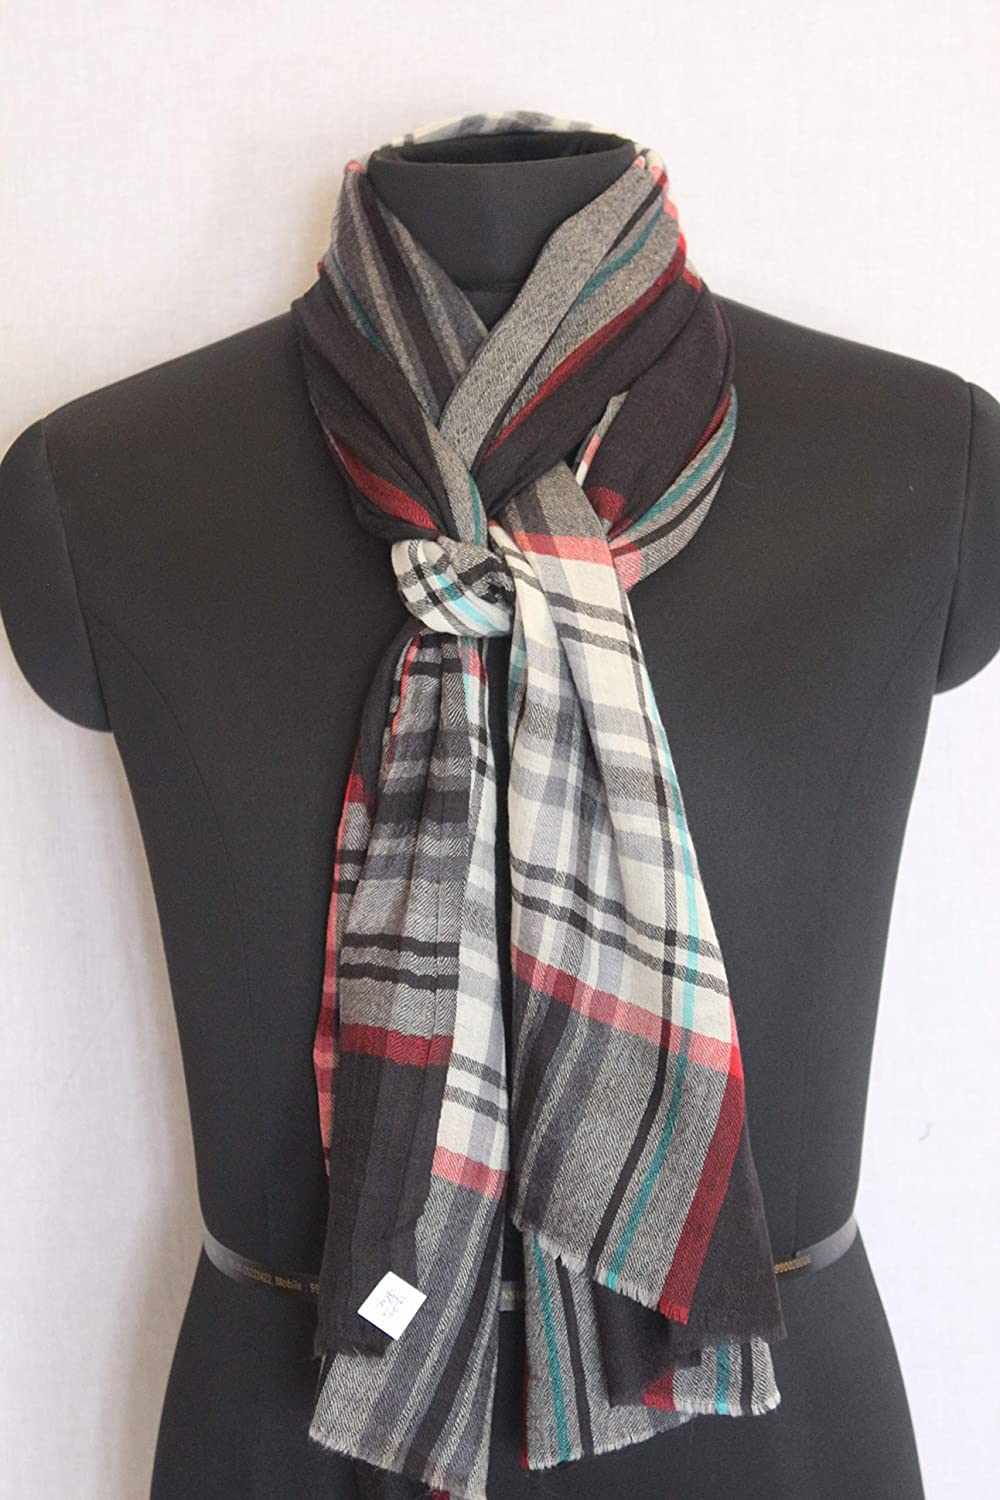 New Burberry Design Indian Checks Pattern Scarf Wrap Soft Wool Stole Unisex Neck Wrap Scarves